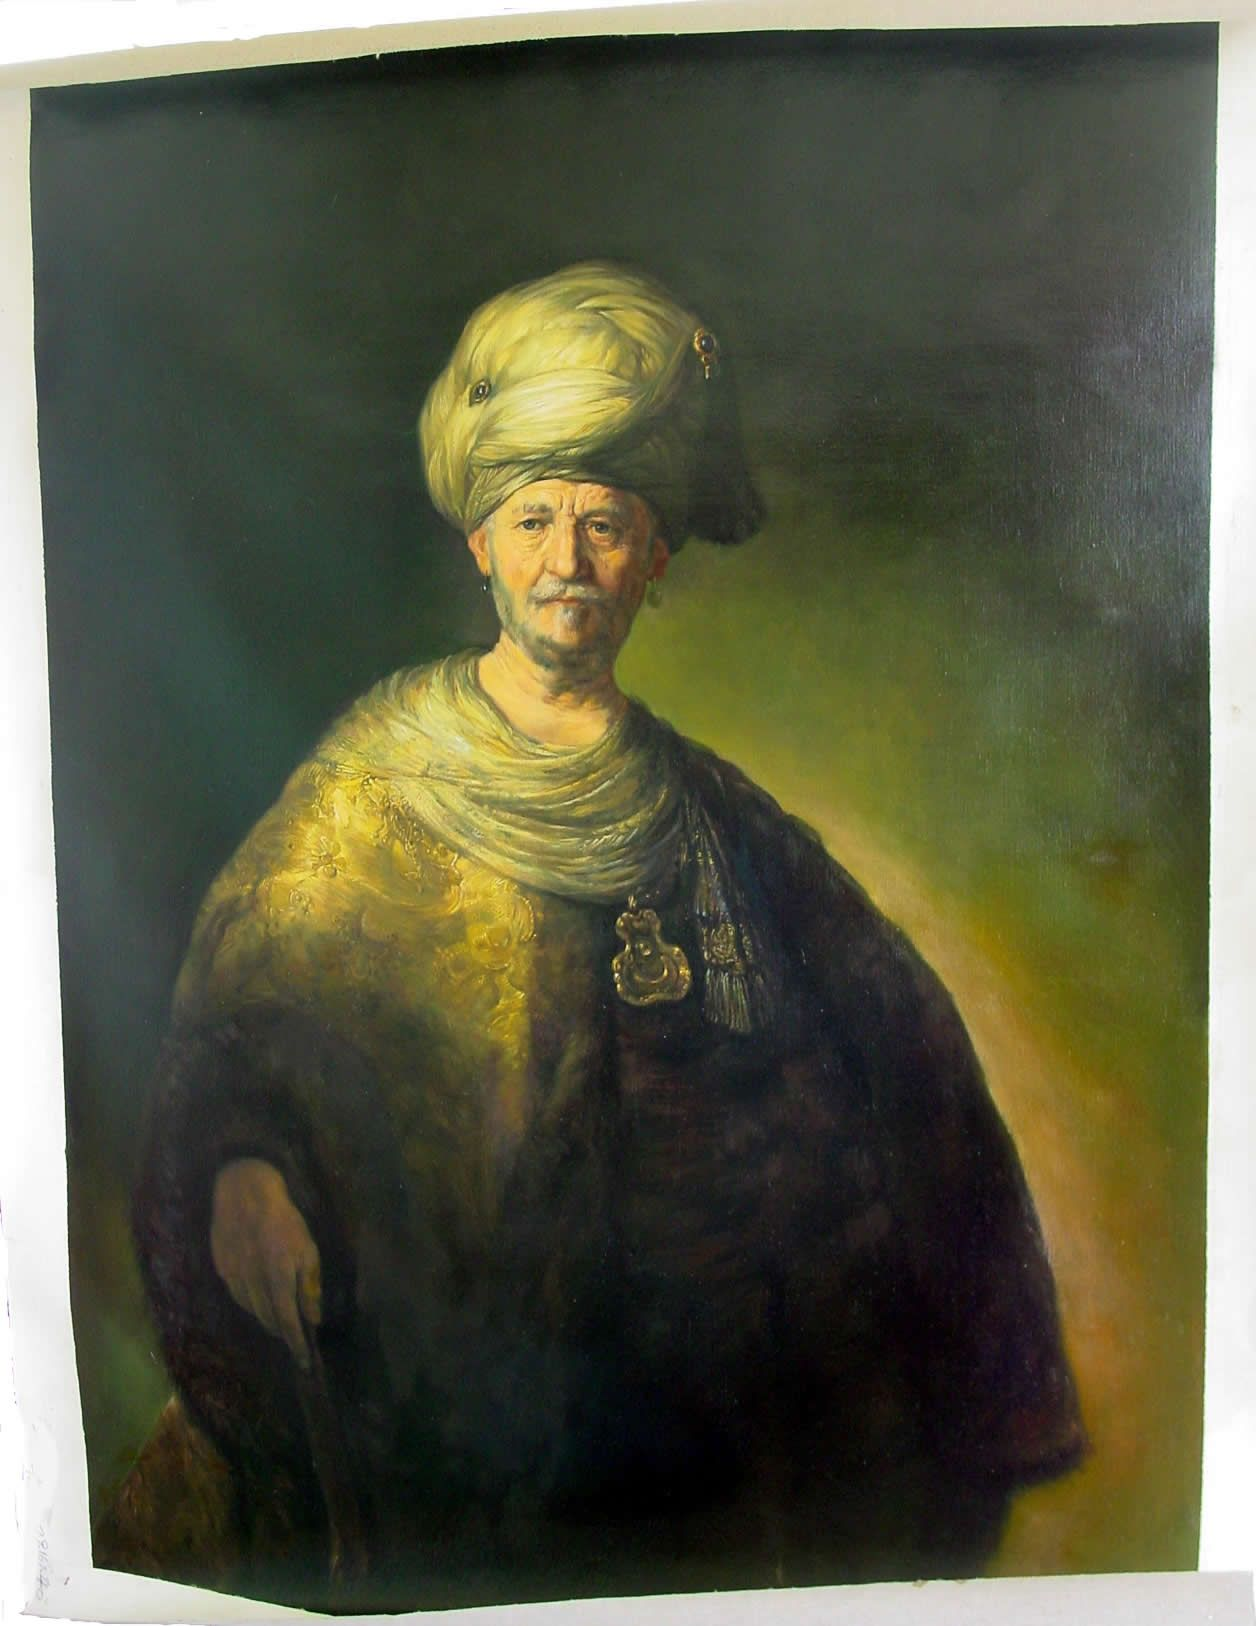 A Reproduction of Knee-length Figure of a Man in an Oriental Dress Rembrandt Check more at https://artunframed.com/Gallery/shop/a-reproduction-of-knee-length-figure-of-a-man-in-an-oriental-dress/